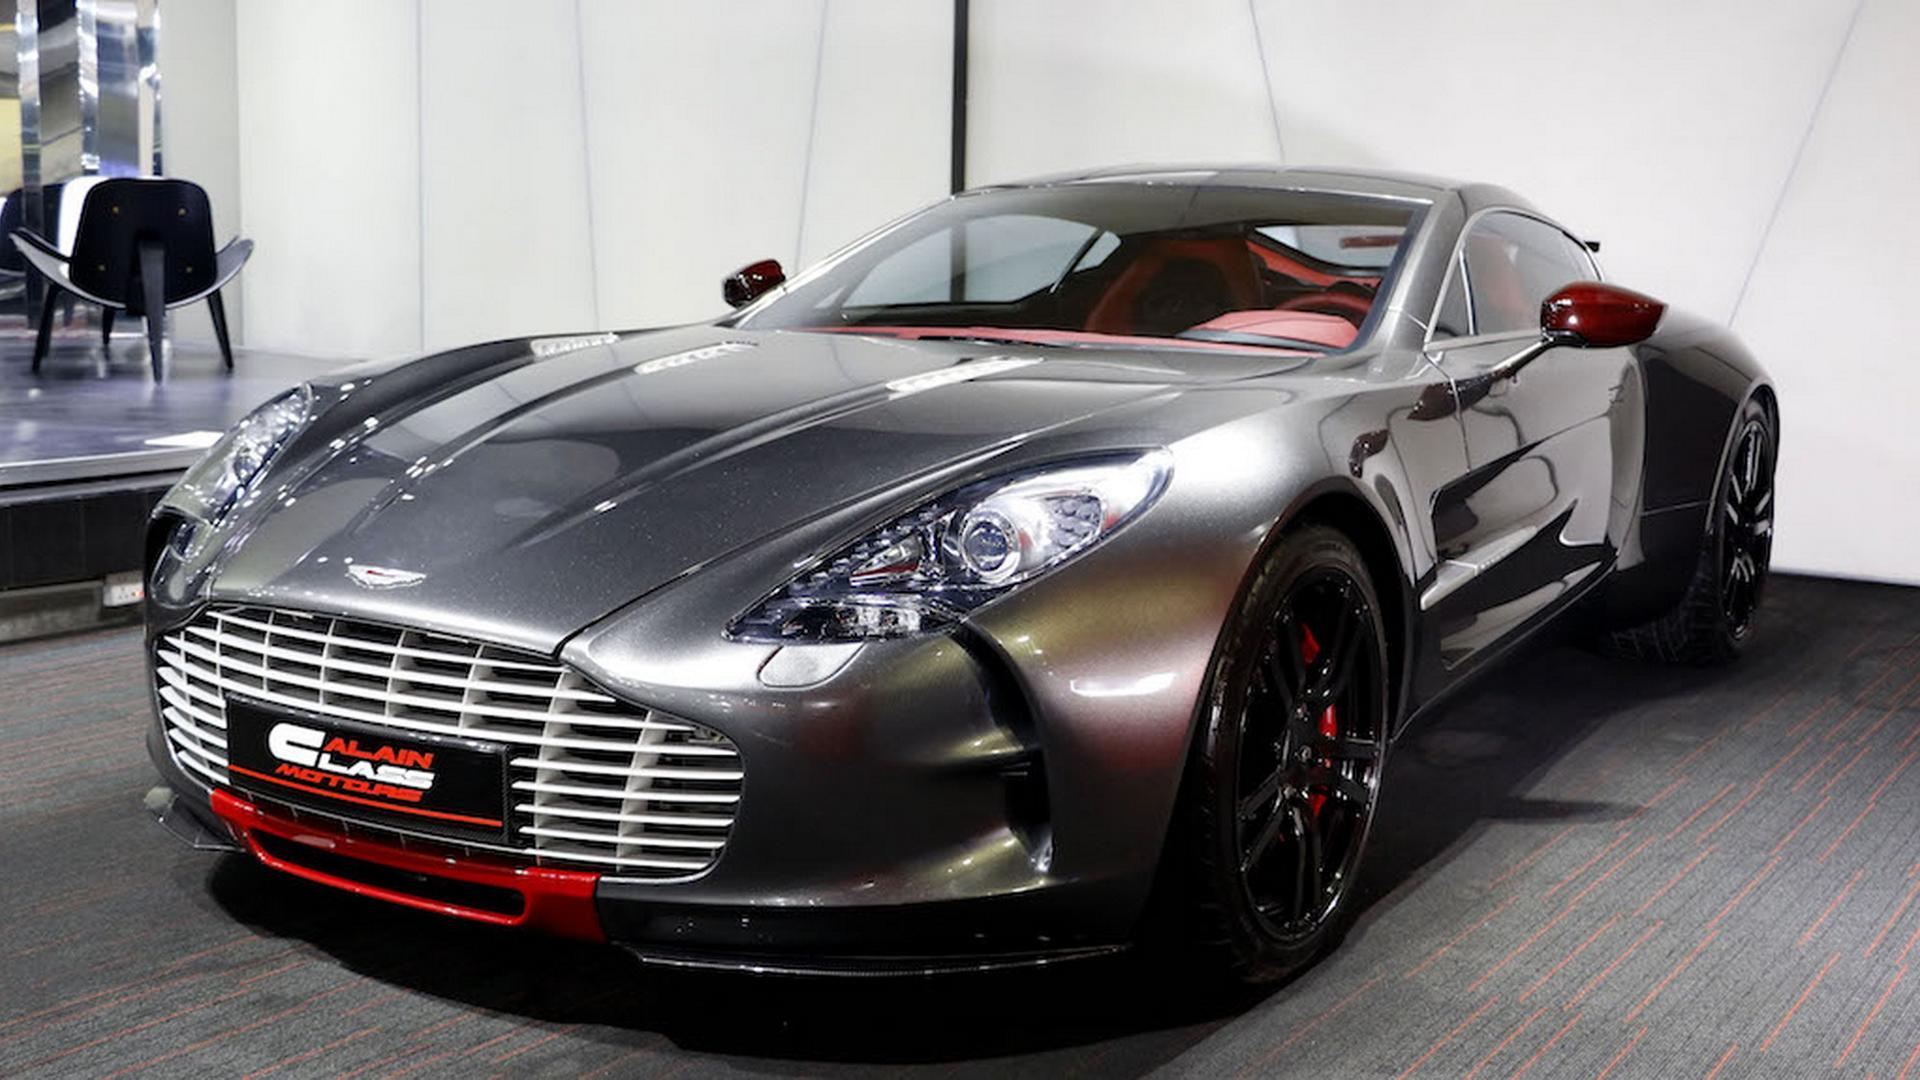 2011-aston-martin-one-77-q-series (2)